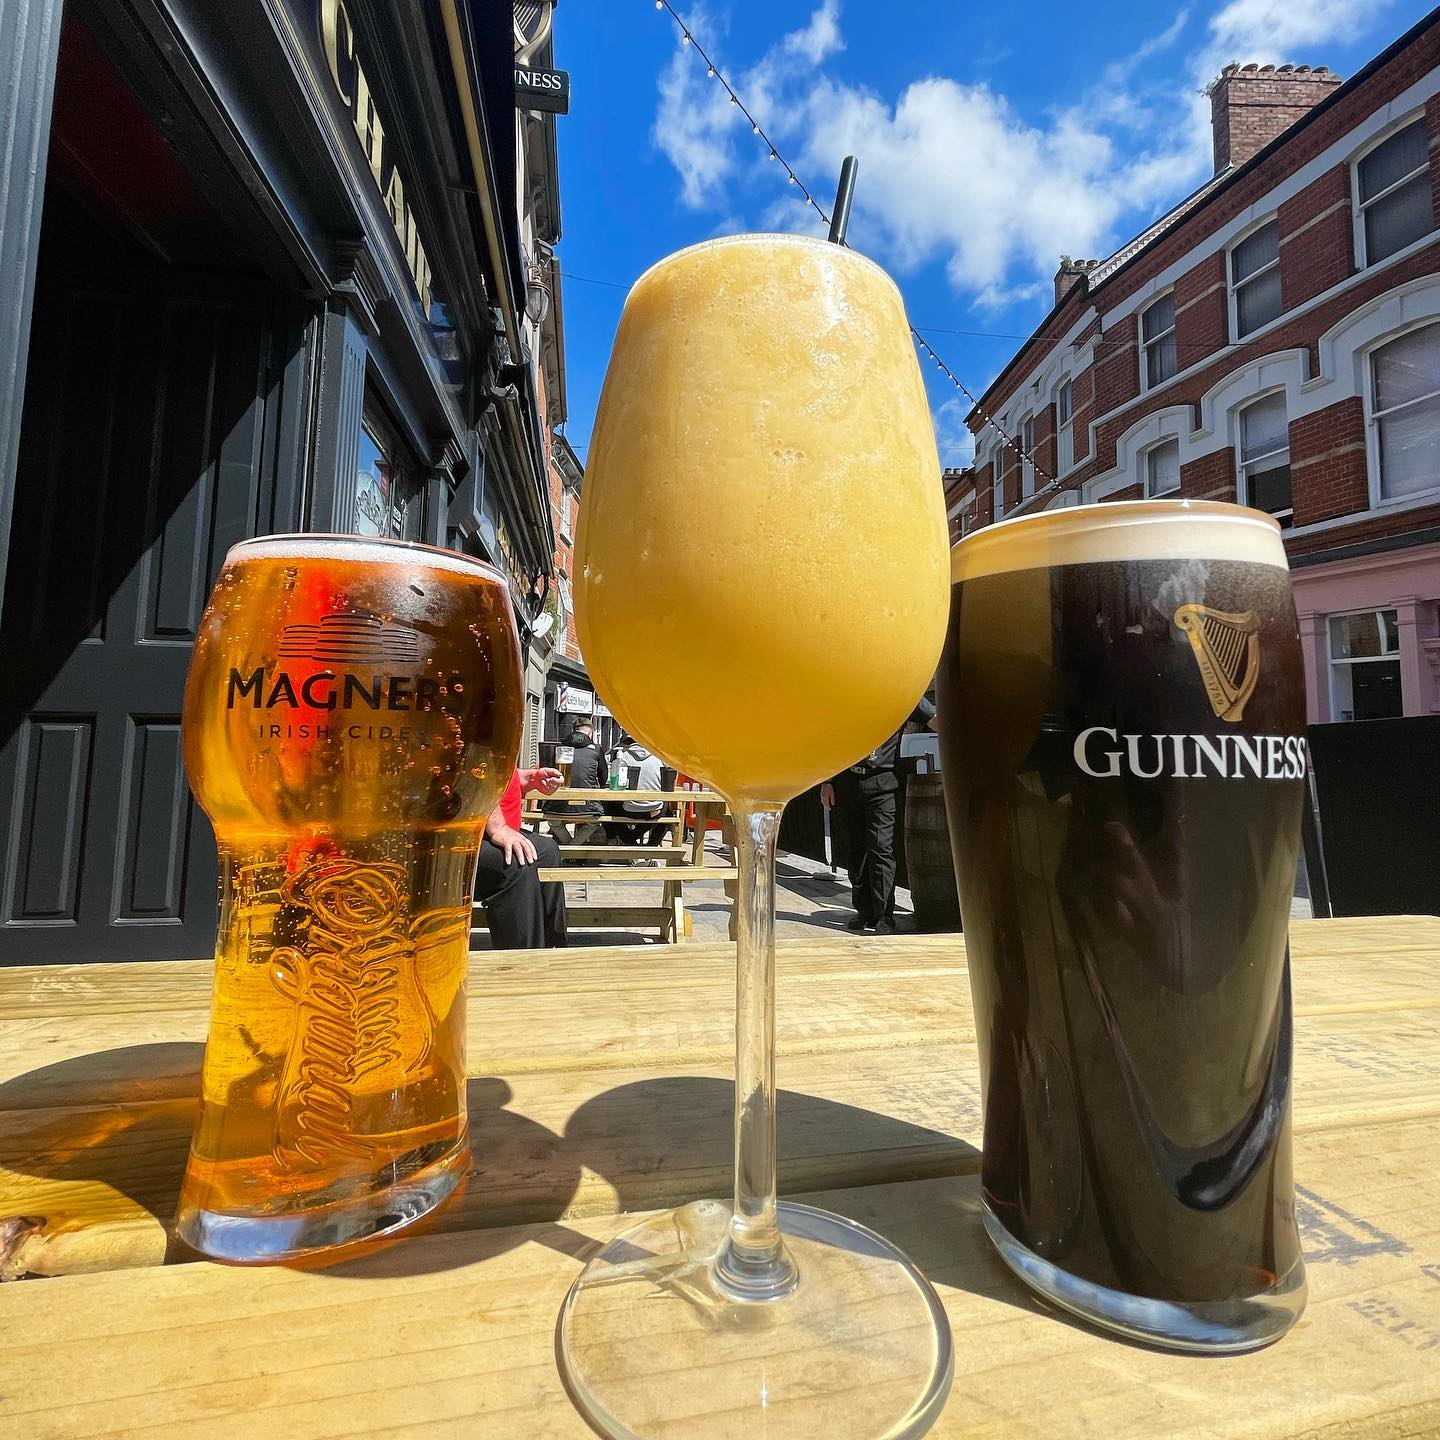 It's a perfect day for a pint.. or a cocktail  ... or both? #therockingchairbar #rockingchair #derry #pints #cocktails #humpday